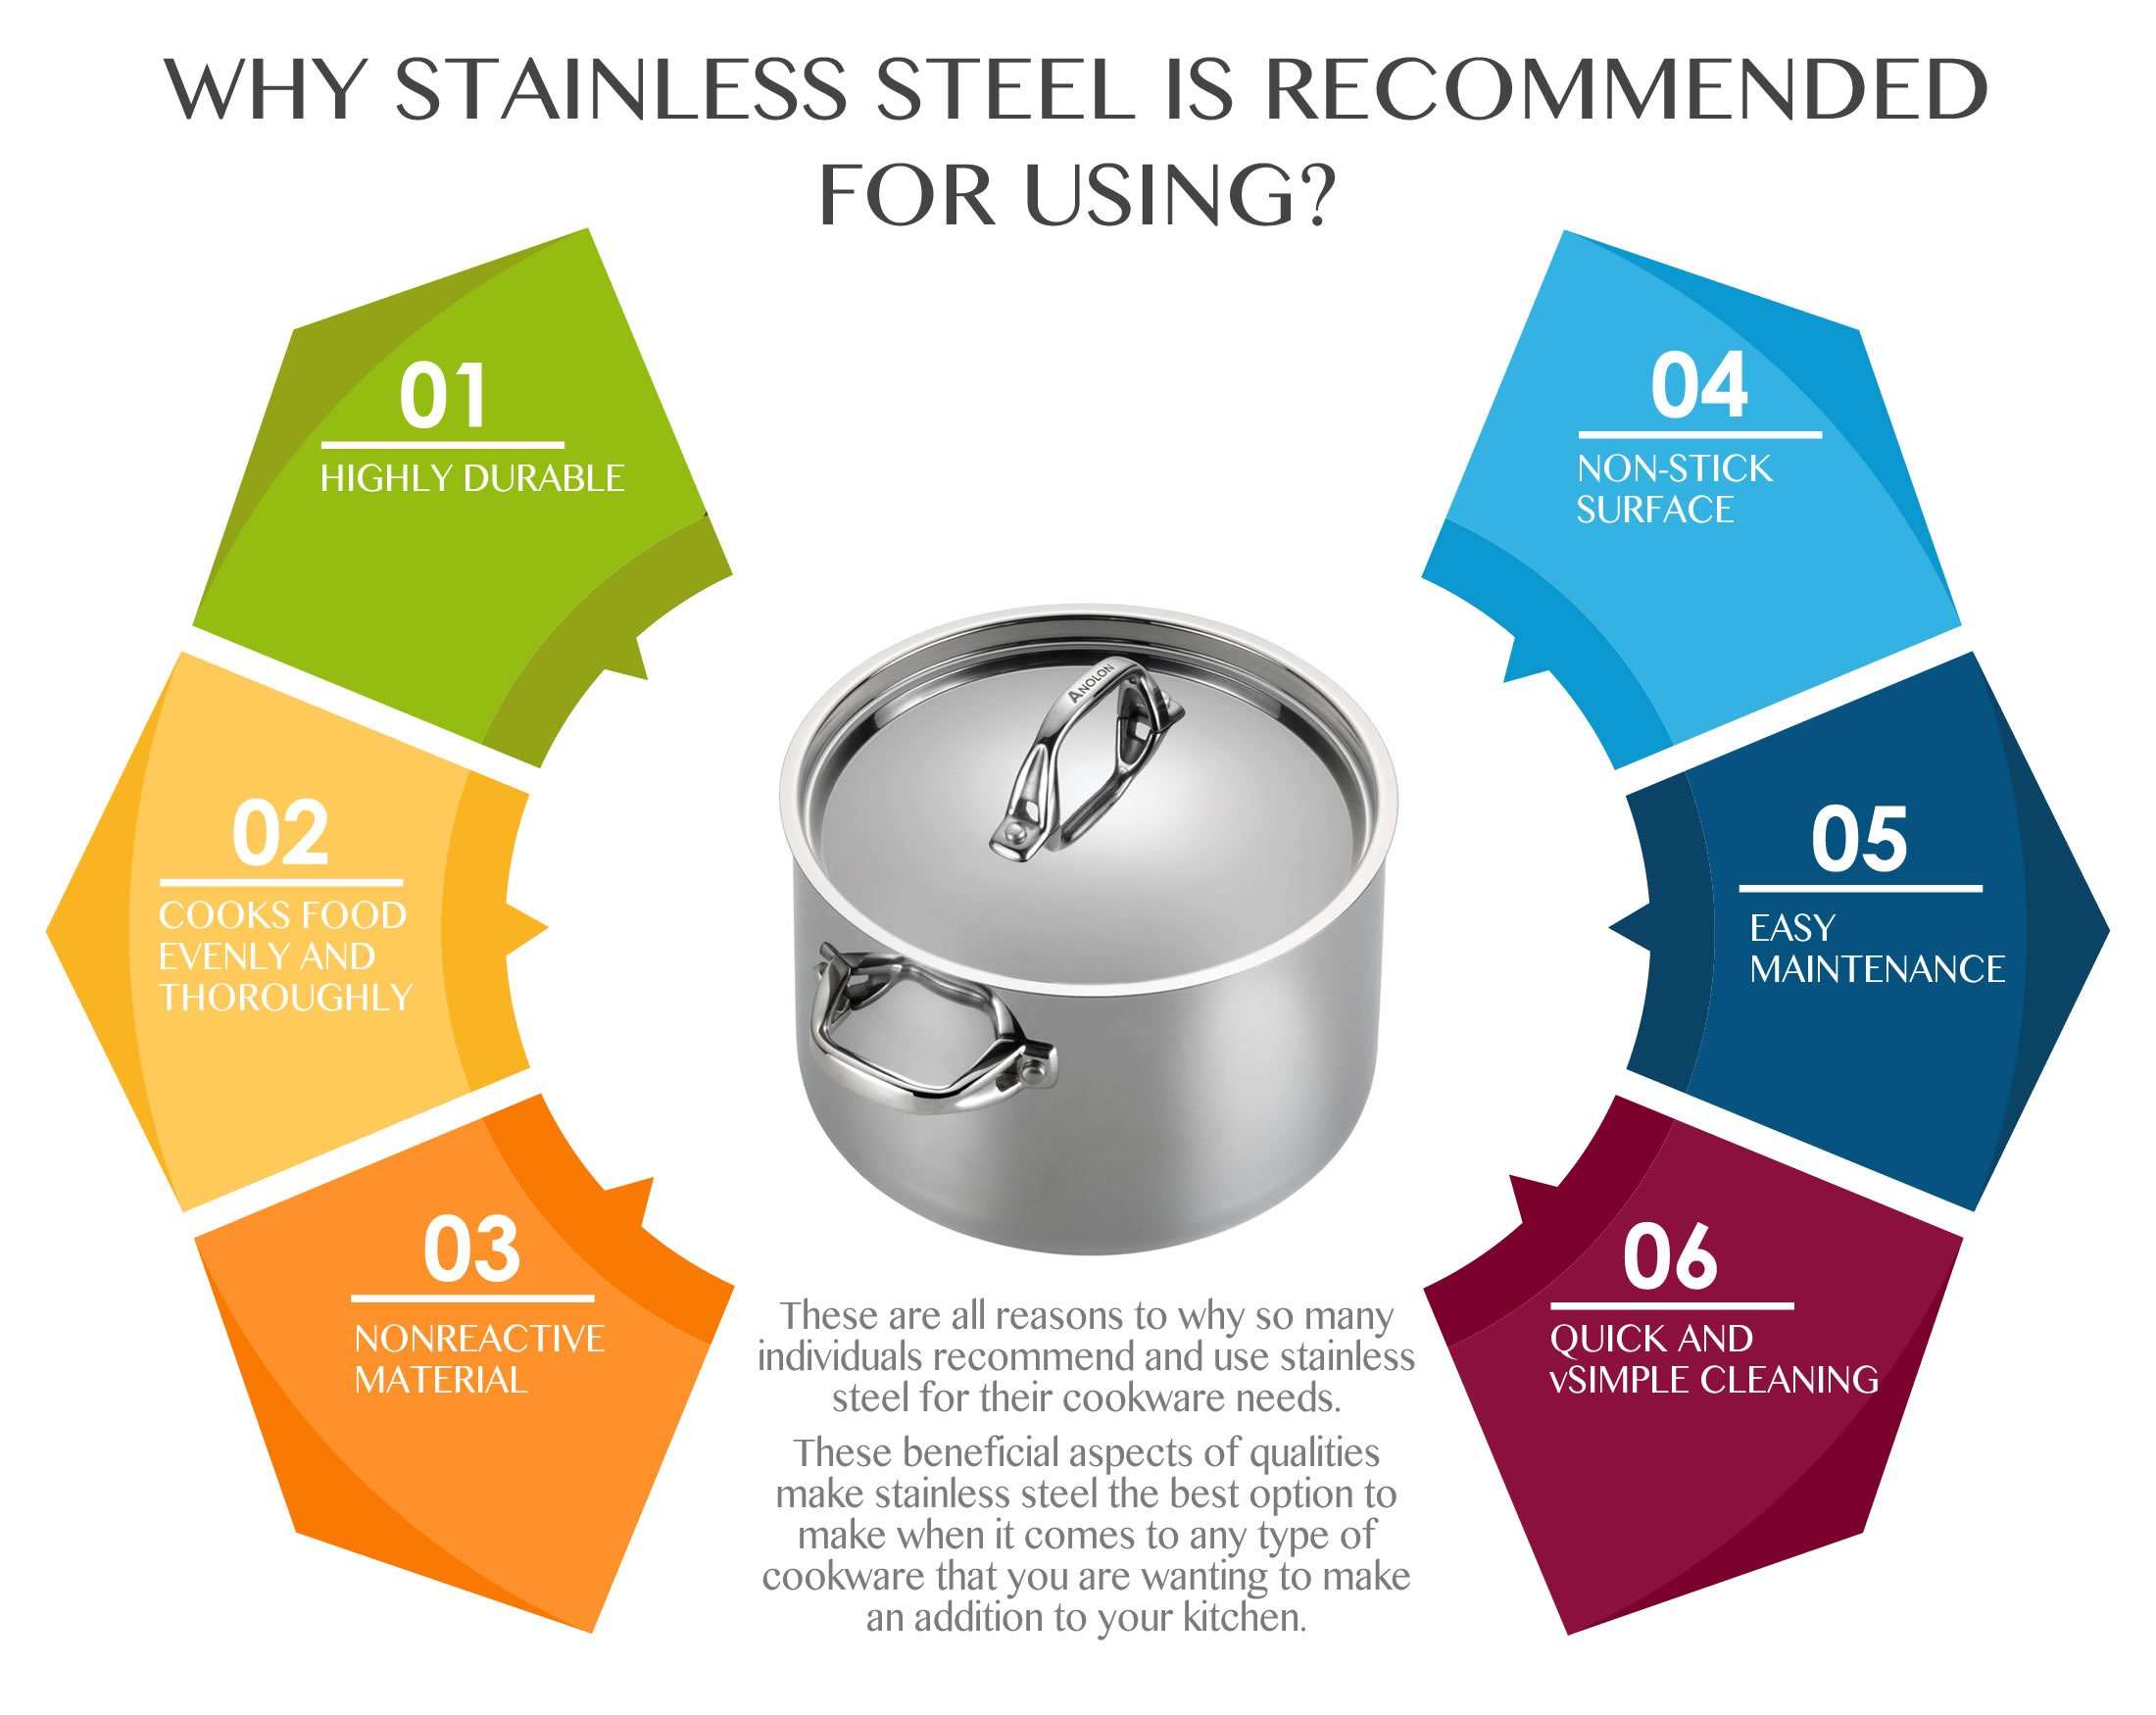 Why Stainless Steel Is Recommended For Using